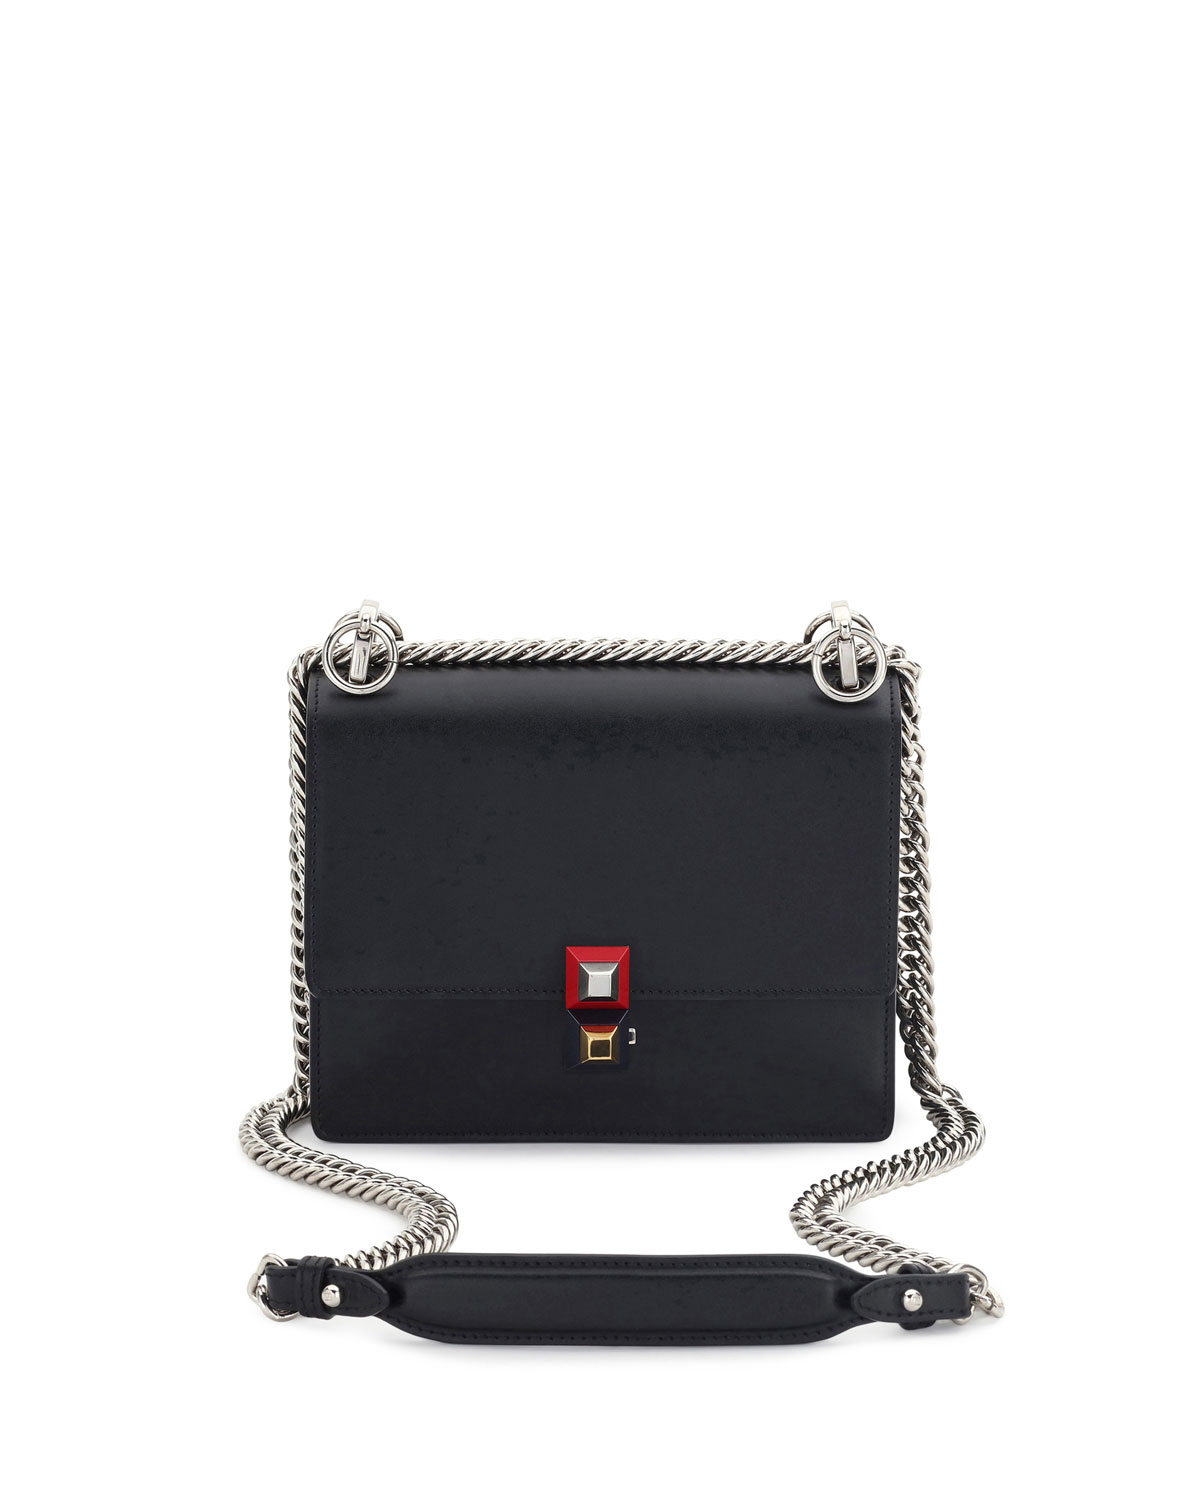 5a6f27050489 Quick Look. Fendi · Kan I Mini Leather Chain Shoulder Bag